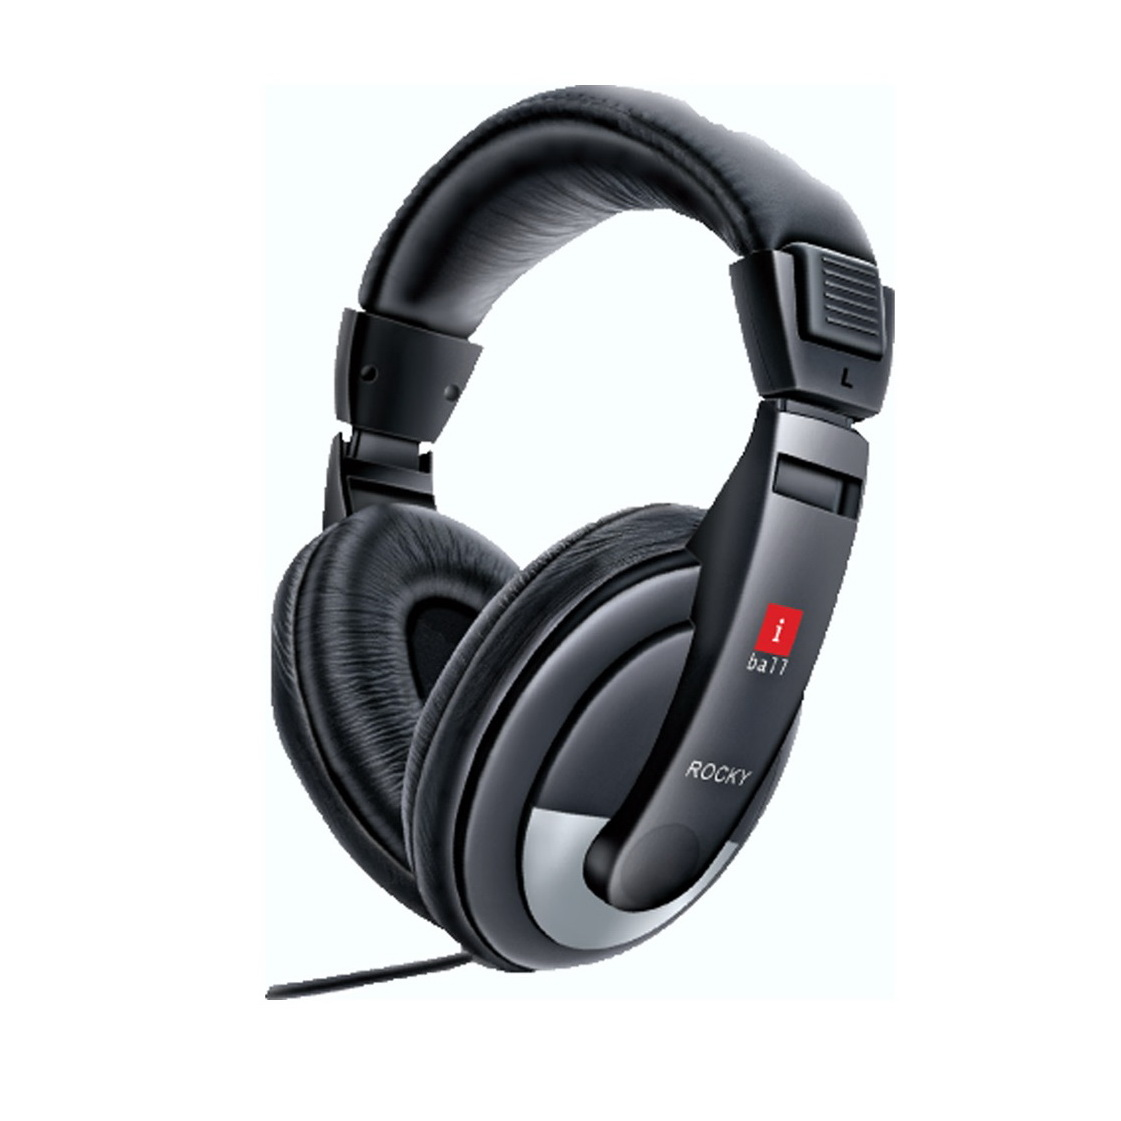 Image result for iBall Rocky over-ear headphones with mic